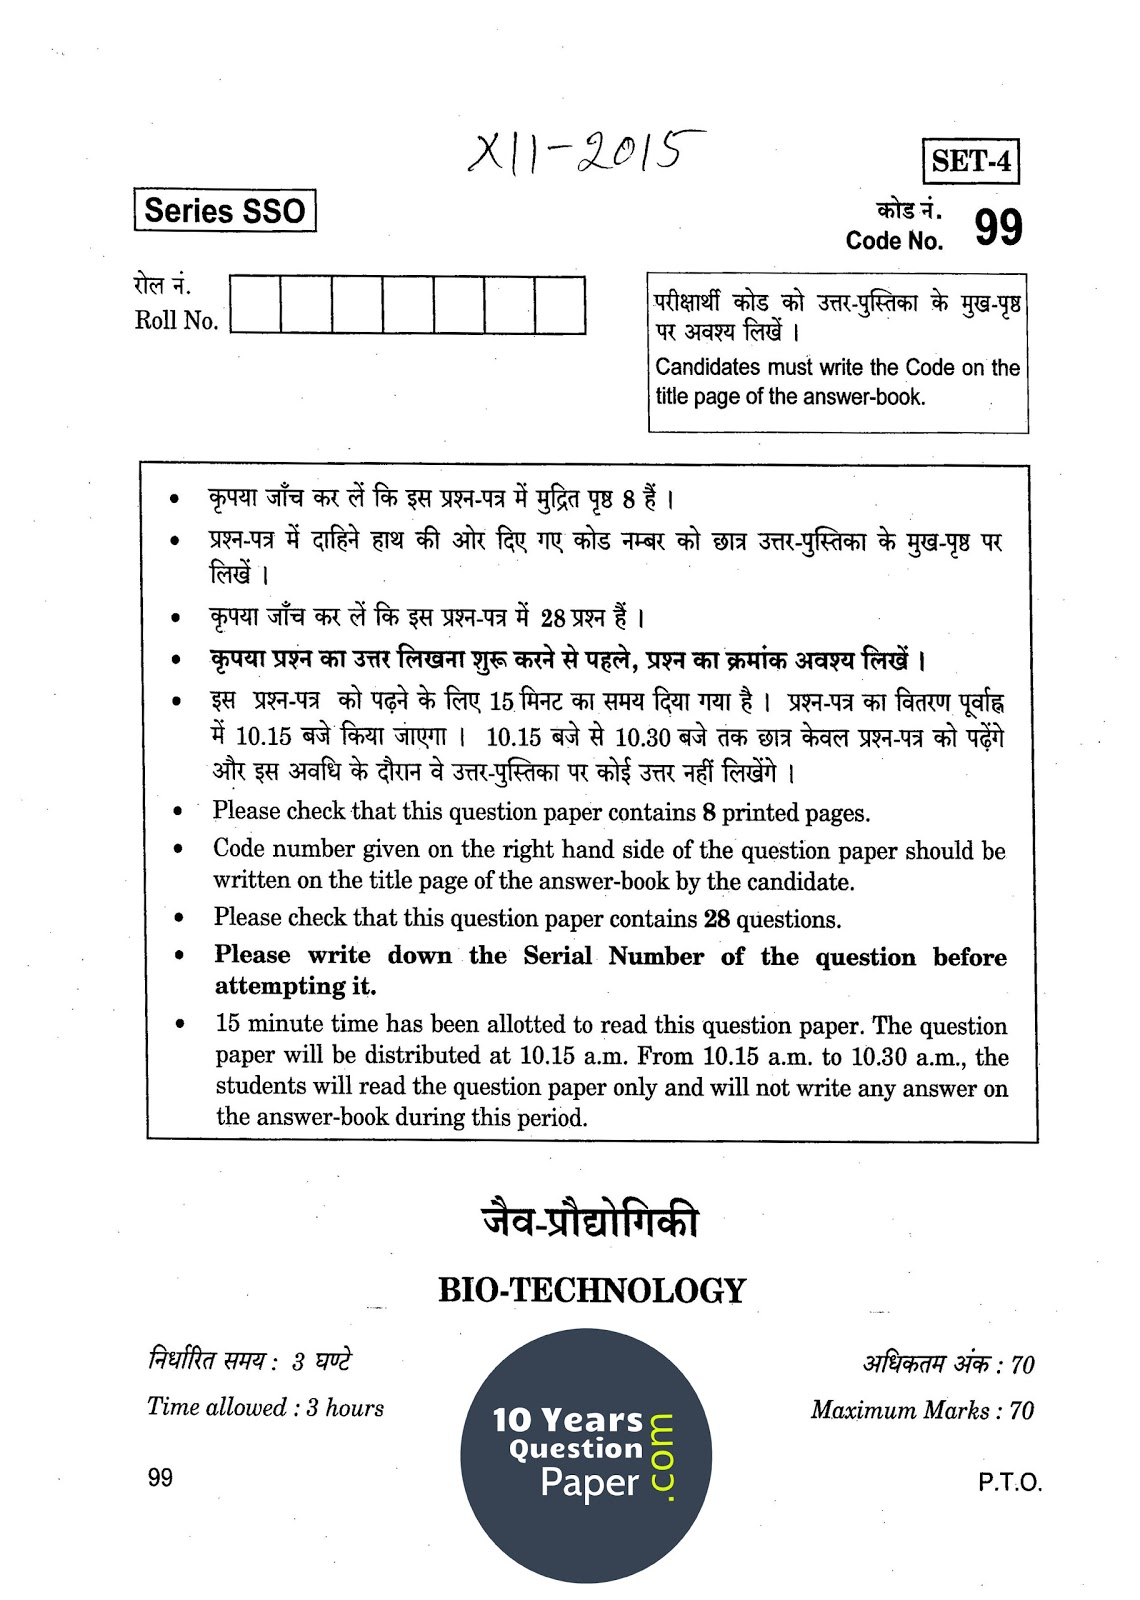 CBSE Class 12 Bio-Technology 2015 Question Paper